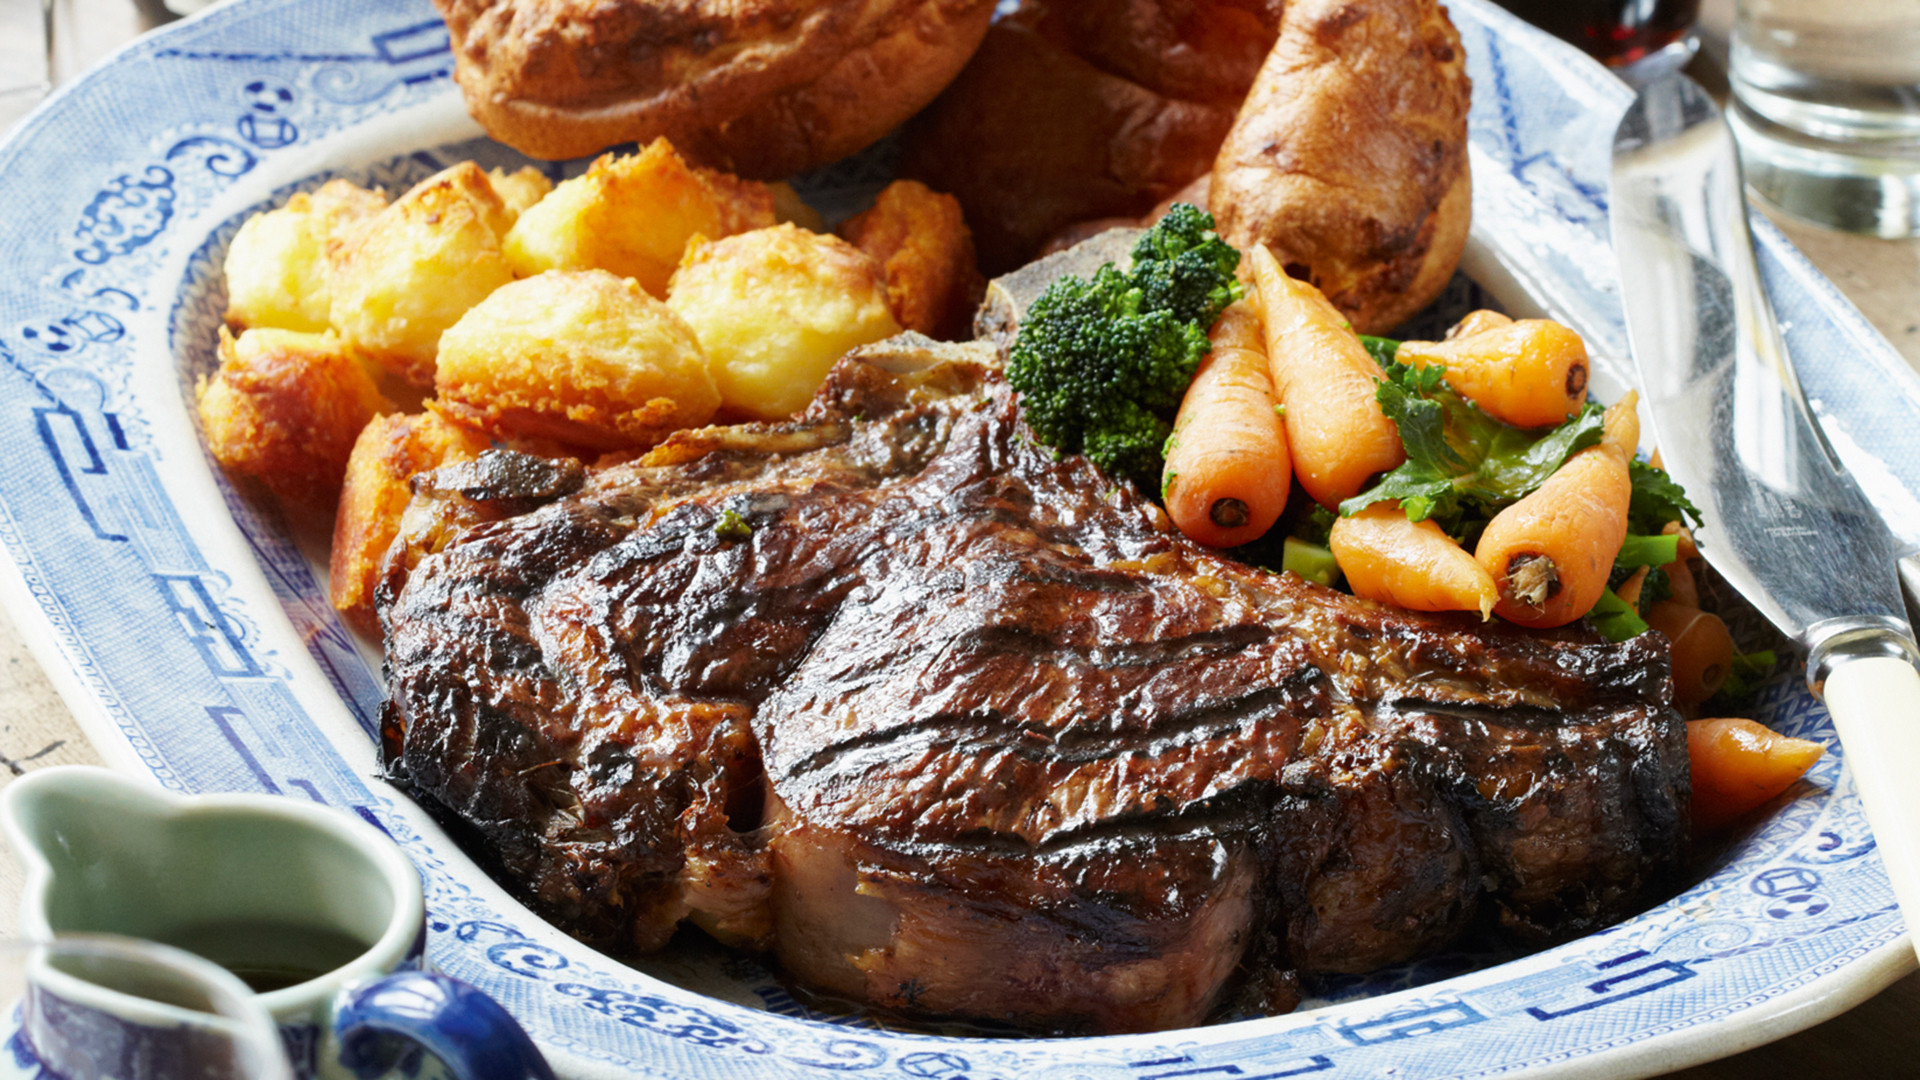 London's best Sunday roast – Drapers Arms